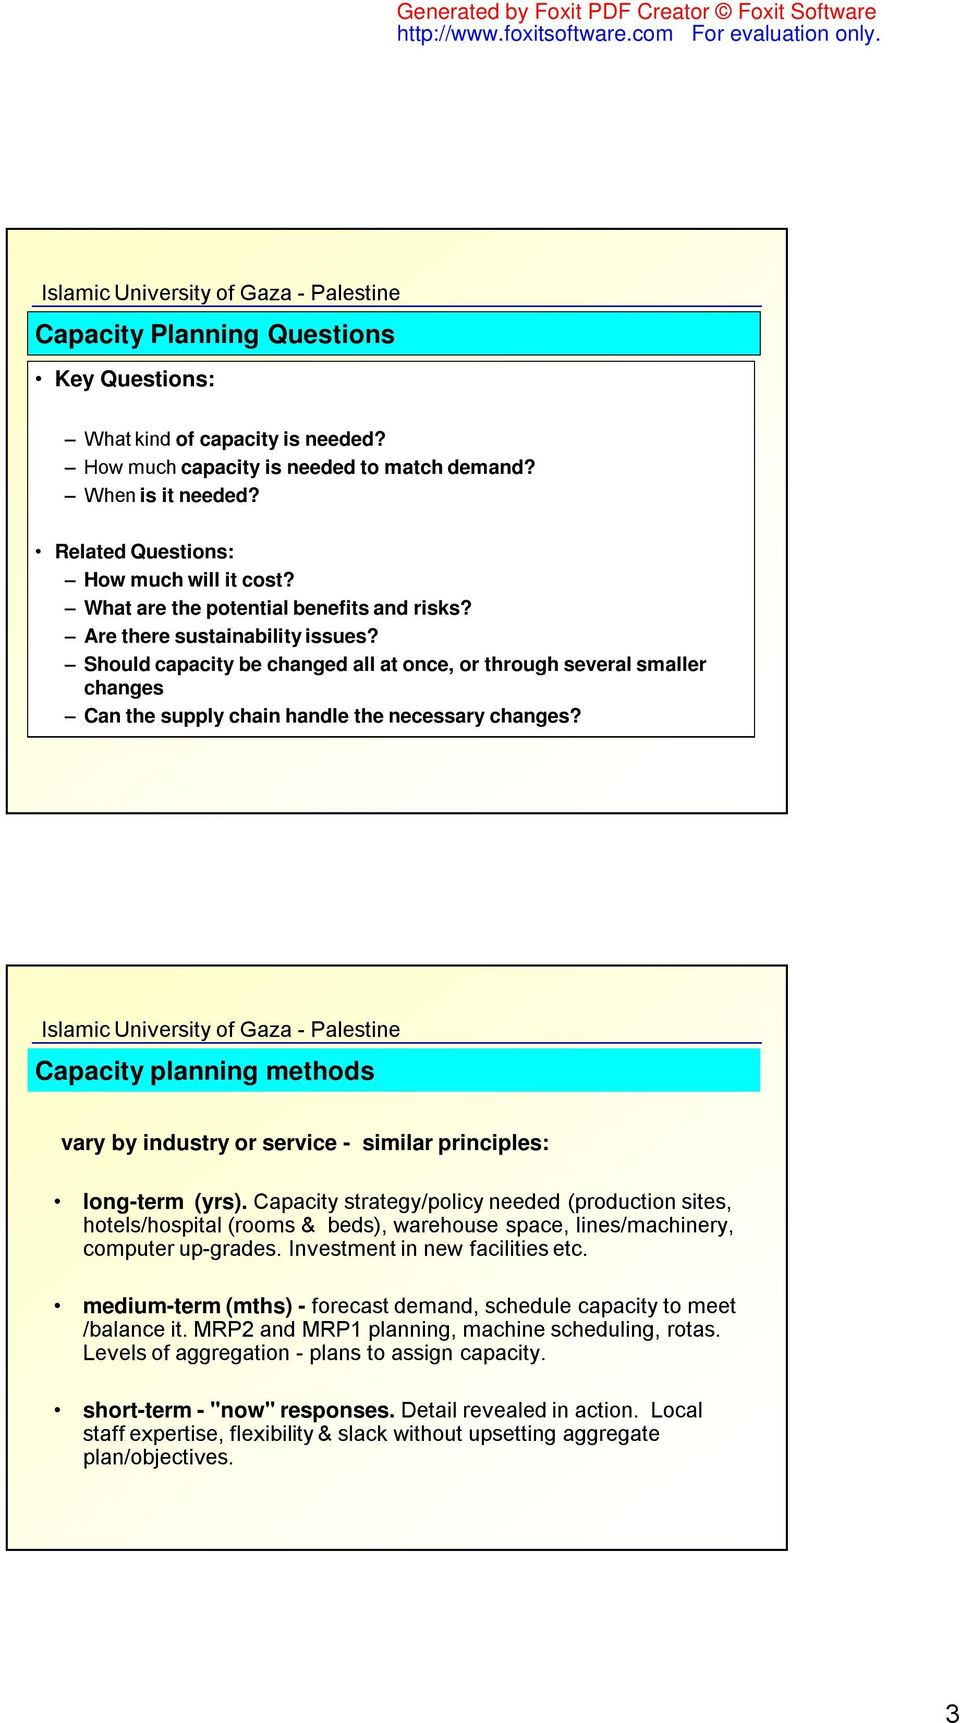 Chapter 5: Strategic Capacity Planning for Products and Services - PDF